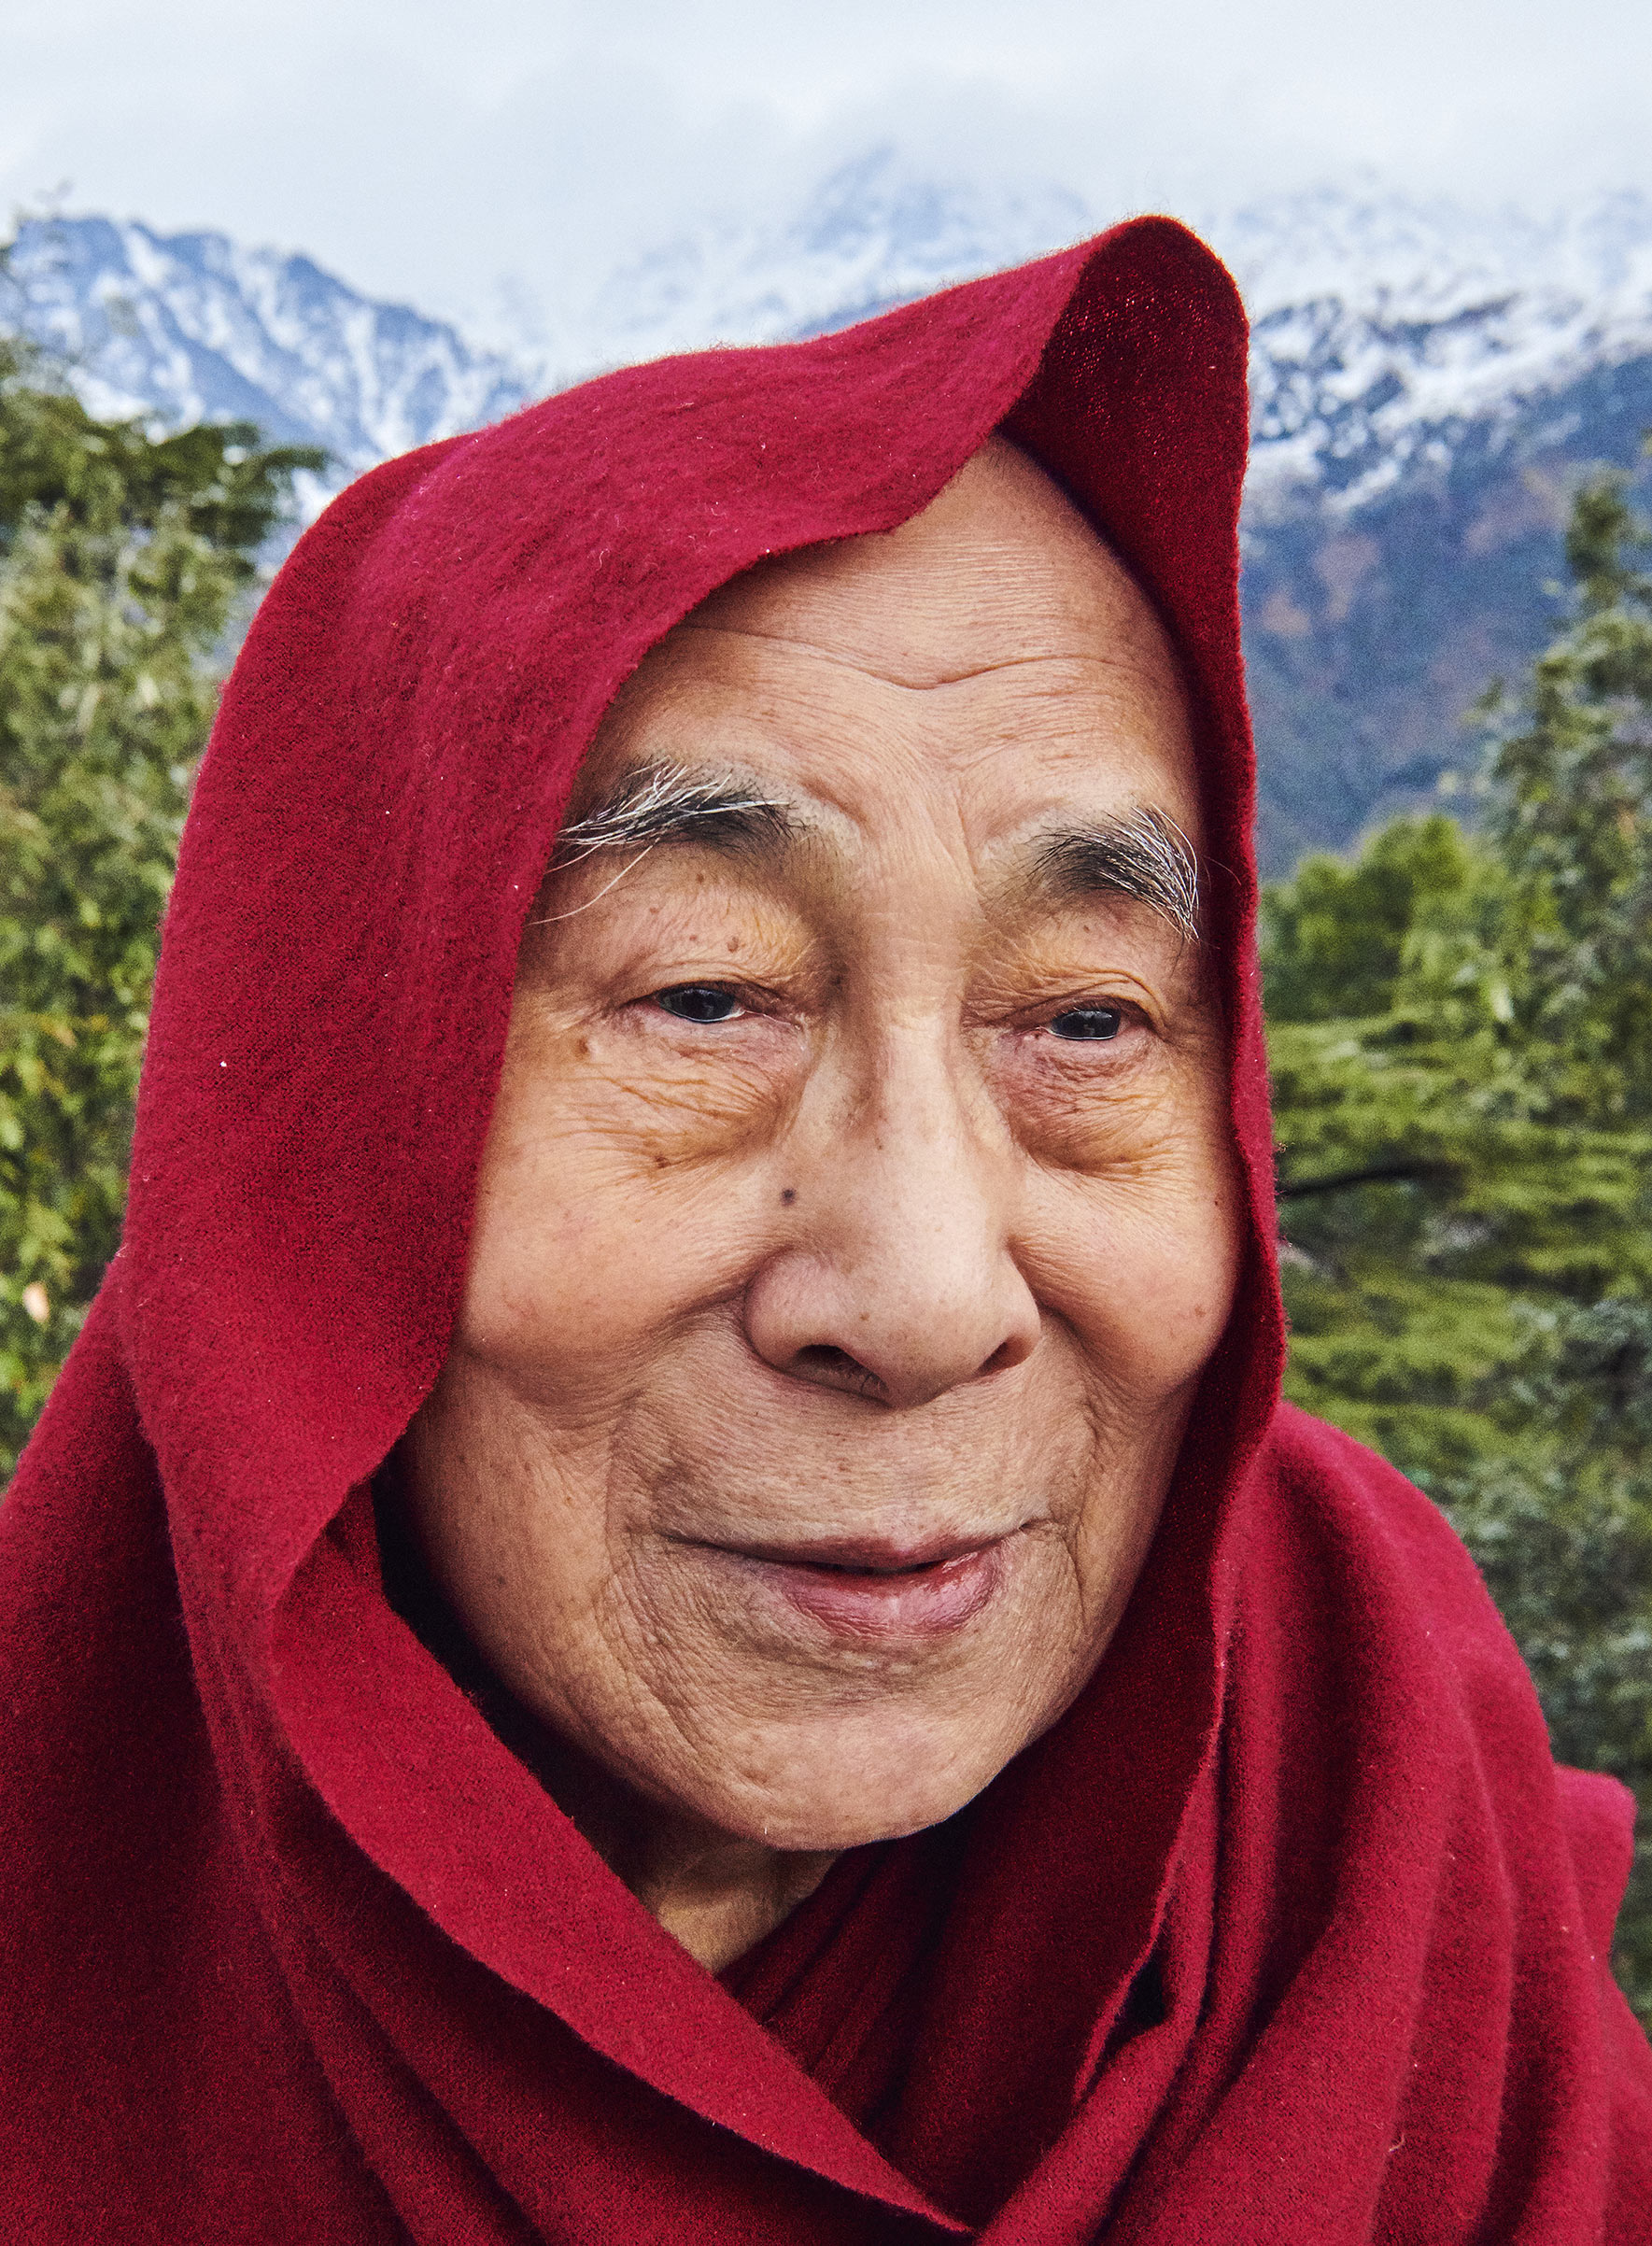 Dalai Lama.  The Survivor,  March 18 issue.